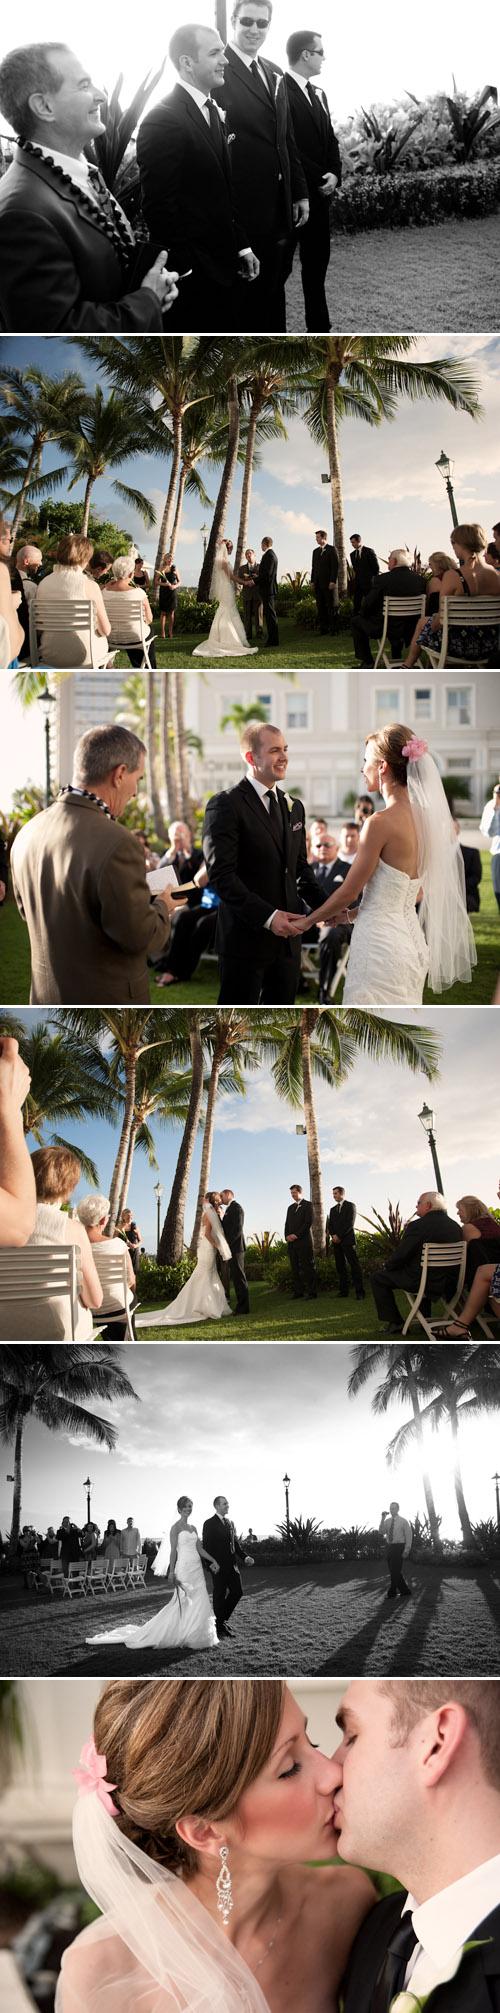 beachfront destination wedding at Westin Moana Surfrider, Waikiki, Hawaii, photography by Derek Wong